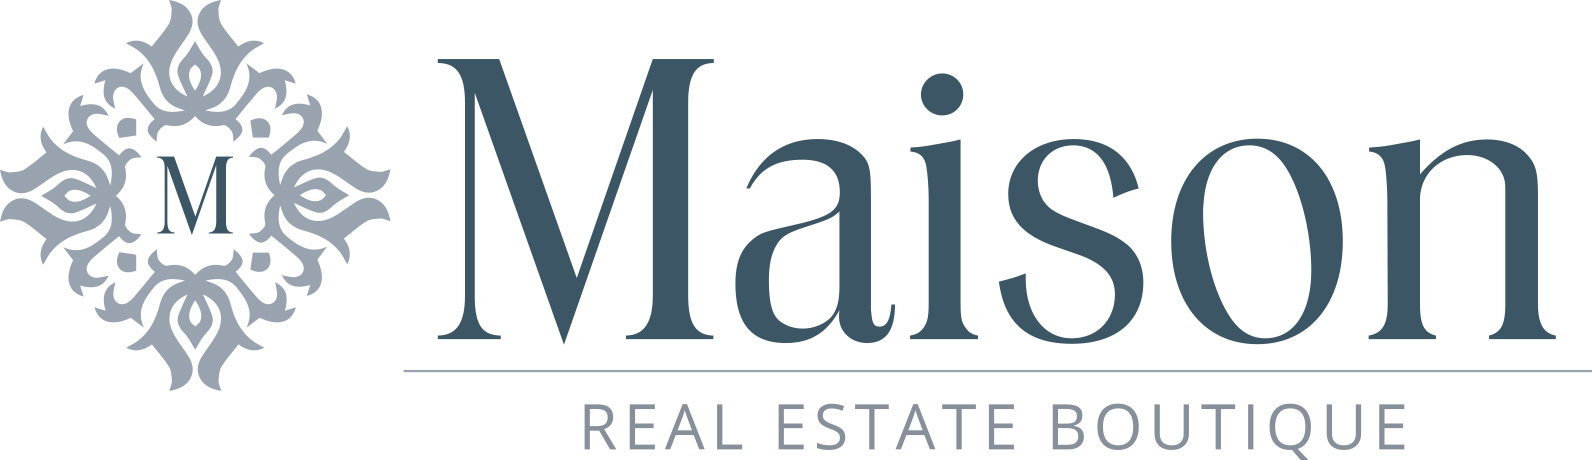 Maison.Final.Horizontal.Logo.jpg